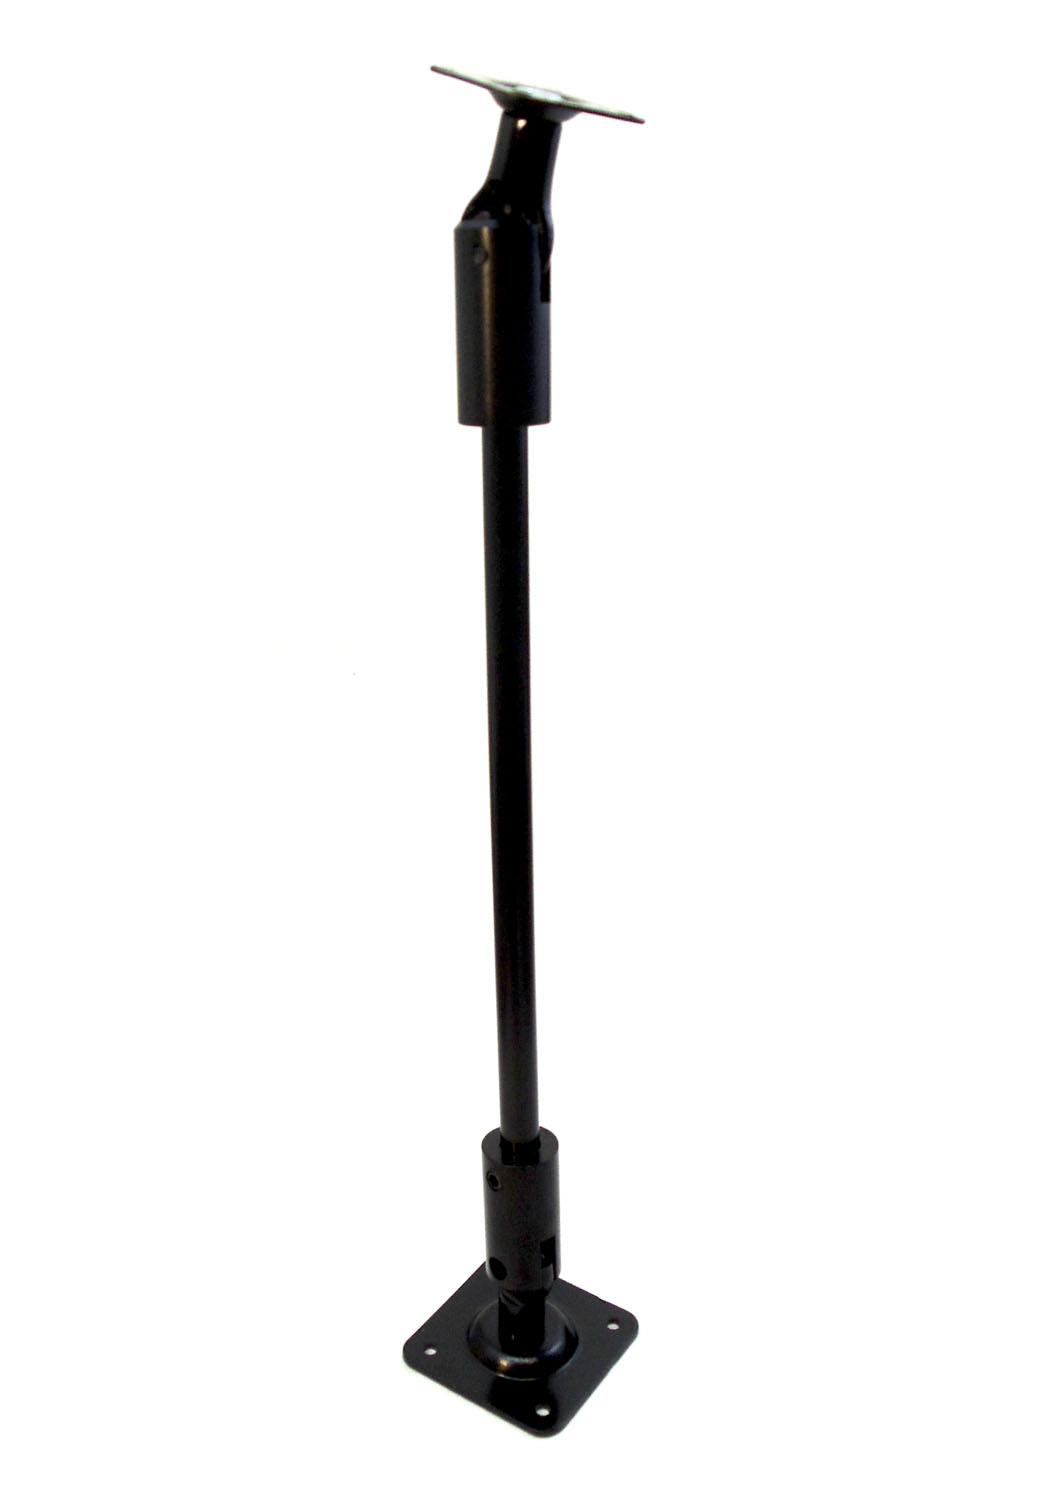 "15"" TALL ADJUSTABLE PEDESTAL MOUNT FOR RADIOS"